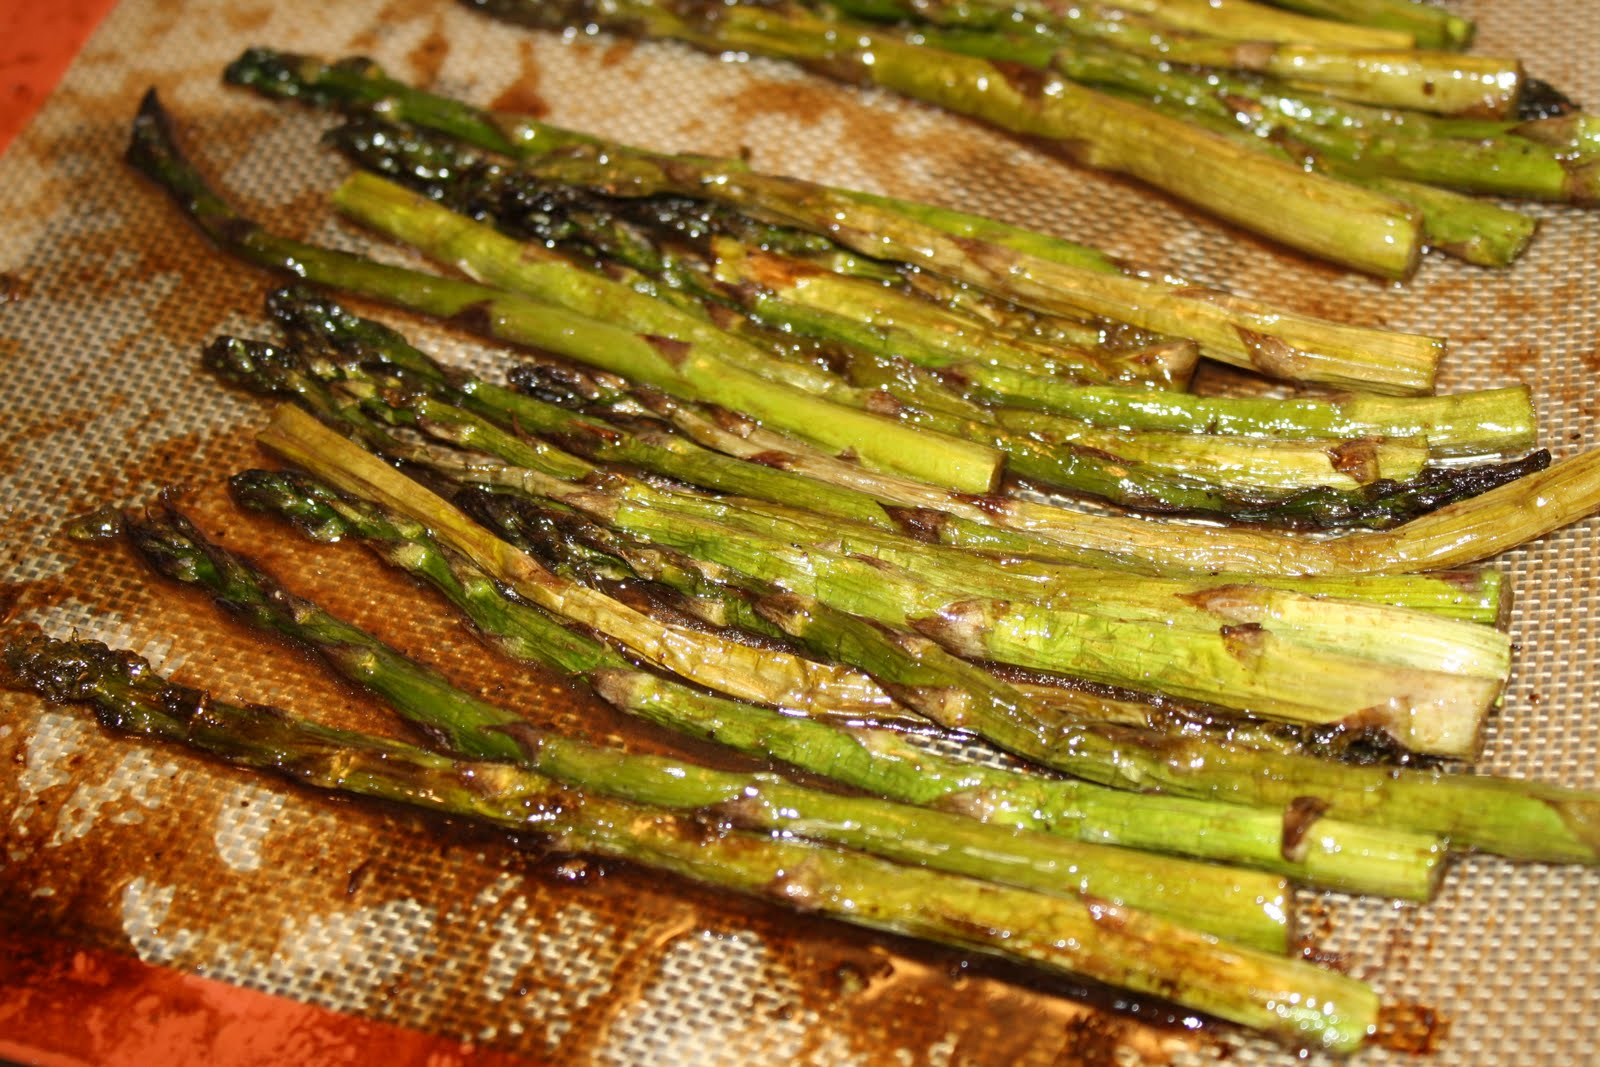 Seasoned with Love: Roasted Asparagus with Balsamic Butter Sauce